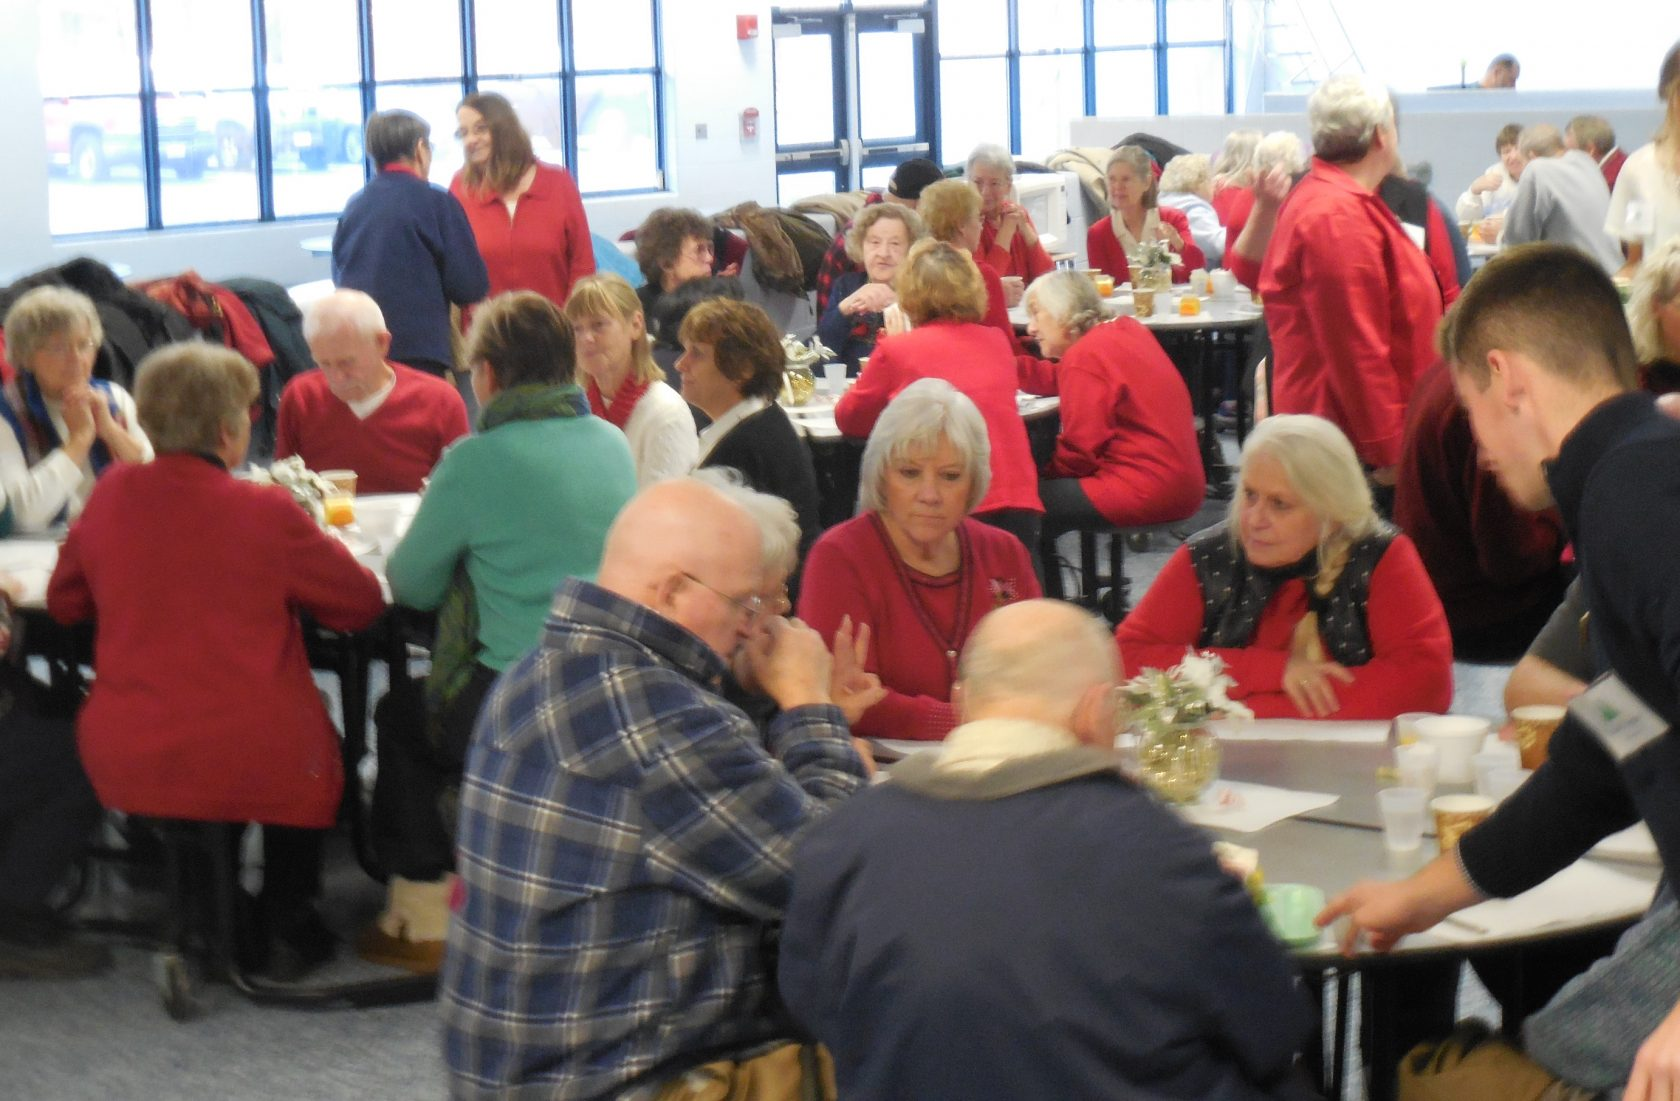 25th annual Senior Citizen Brunch and Concert held at Gateway